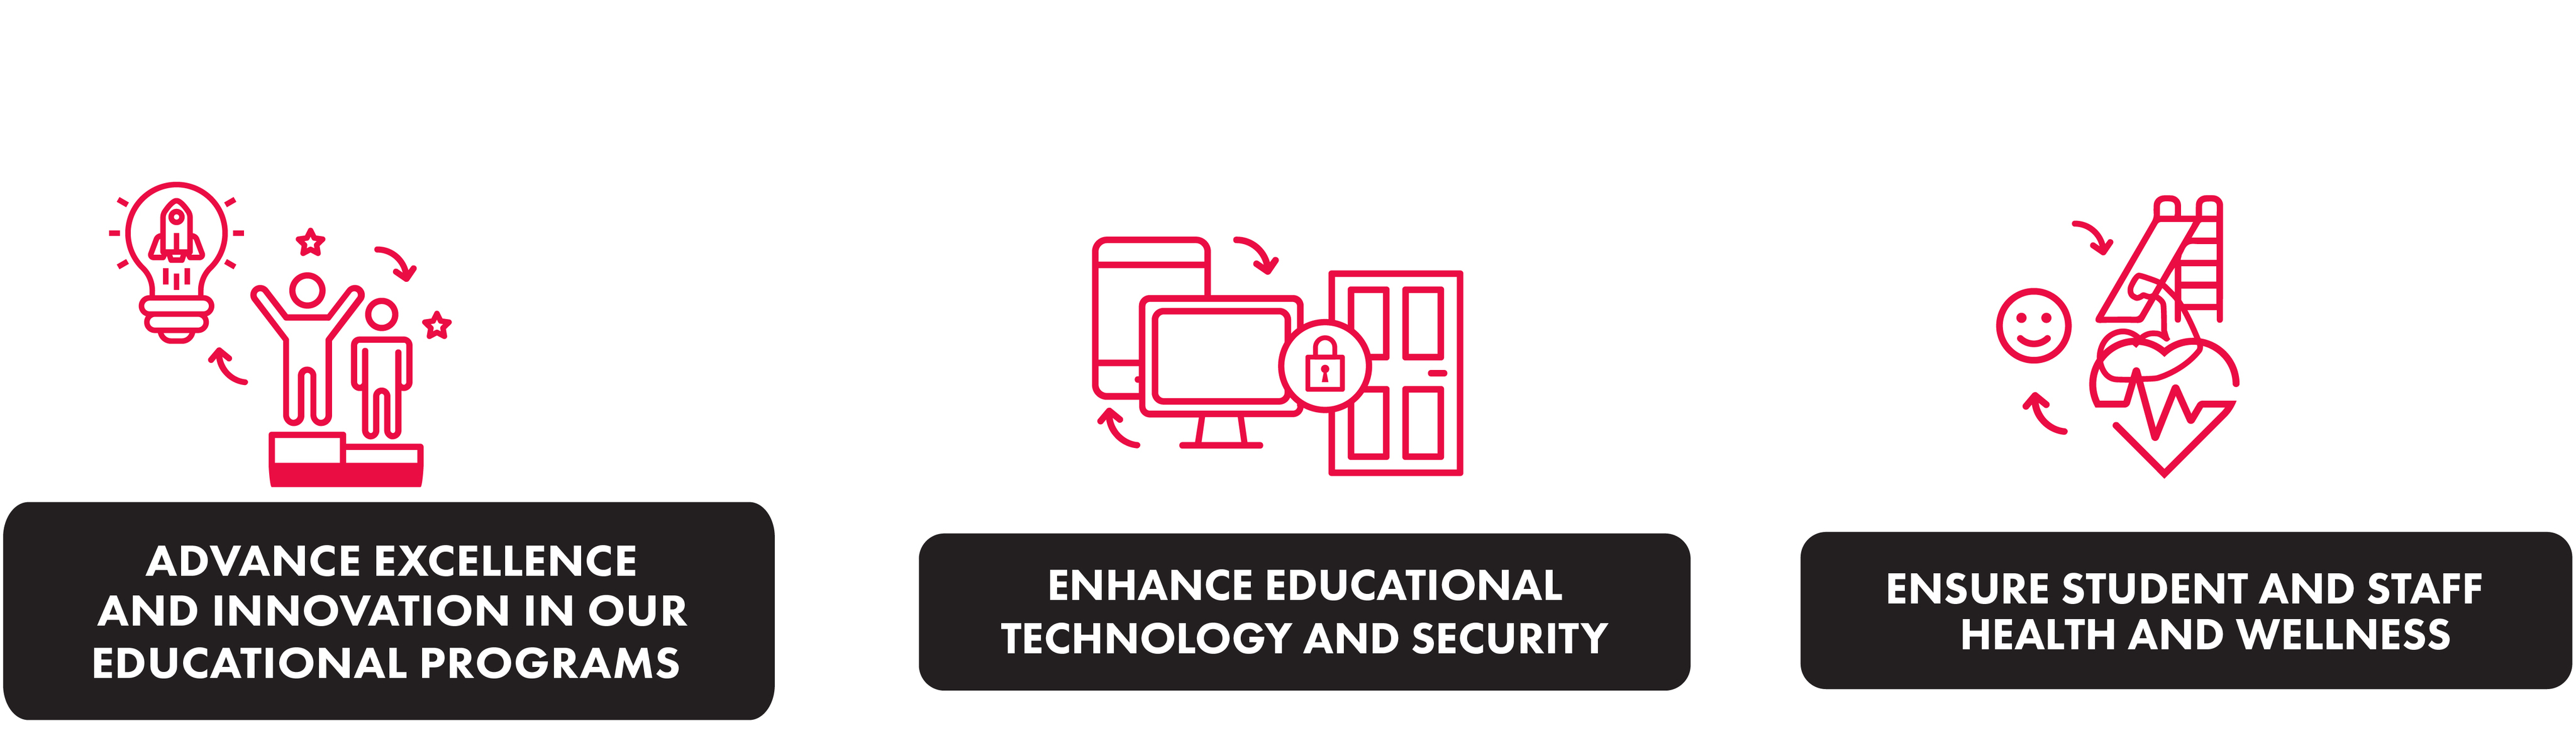 ADVANCE EXCELLENCE AND INNOVATION IN OUR EDUCATIONAL PROGRAMS; ENHANCE EDUCATIONAL TECHNOLOGY AND SECURITY; ENSURE STUDENT AND STAFF HEALTH AND WELLNESS0